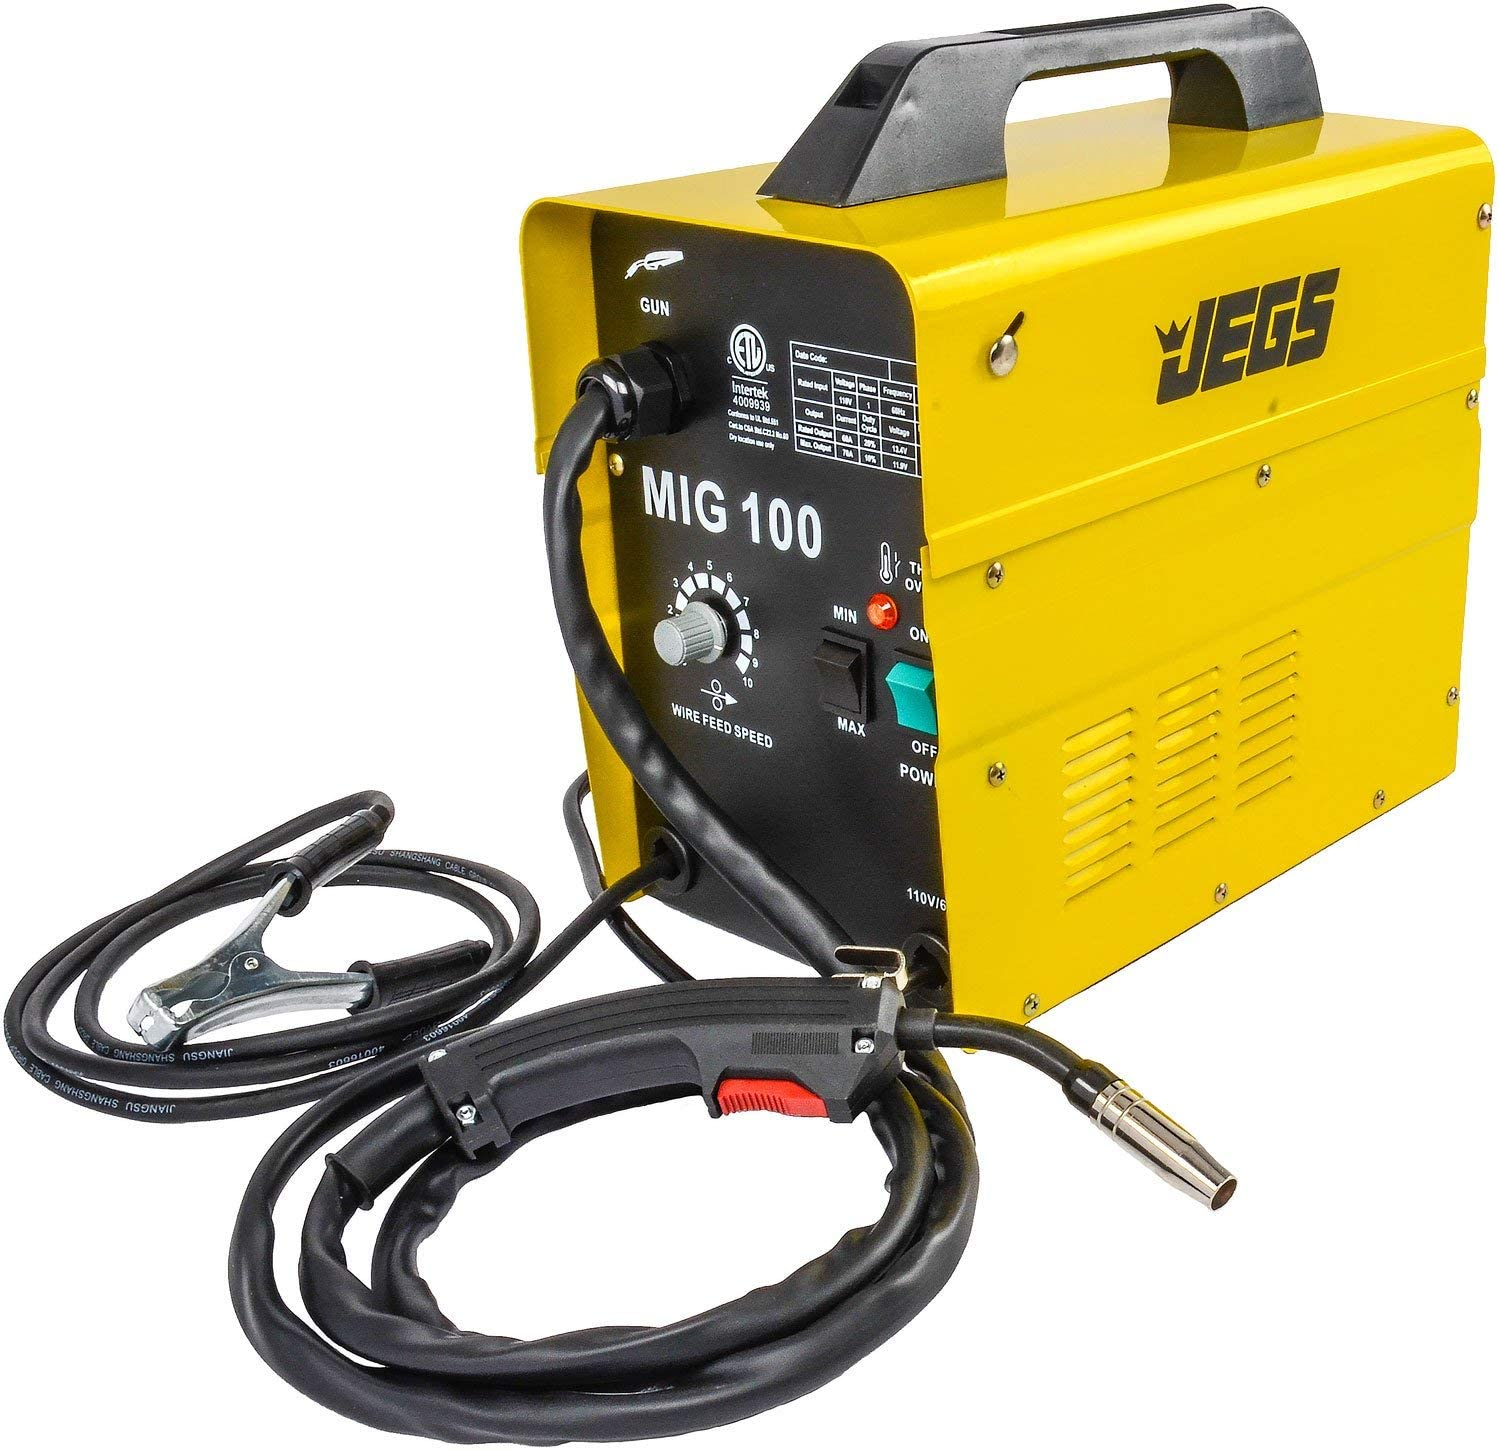 Best 110v Mig Welder (MIG, TIG, Stick) - Our 5 Reviews for 2020 4